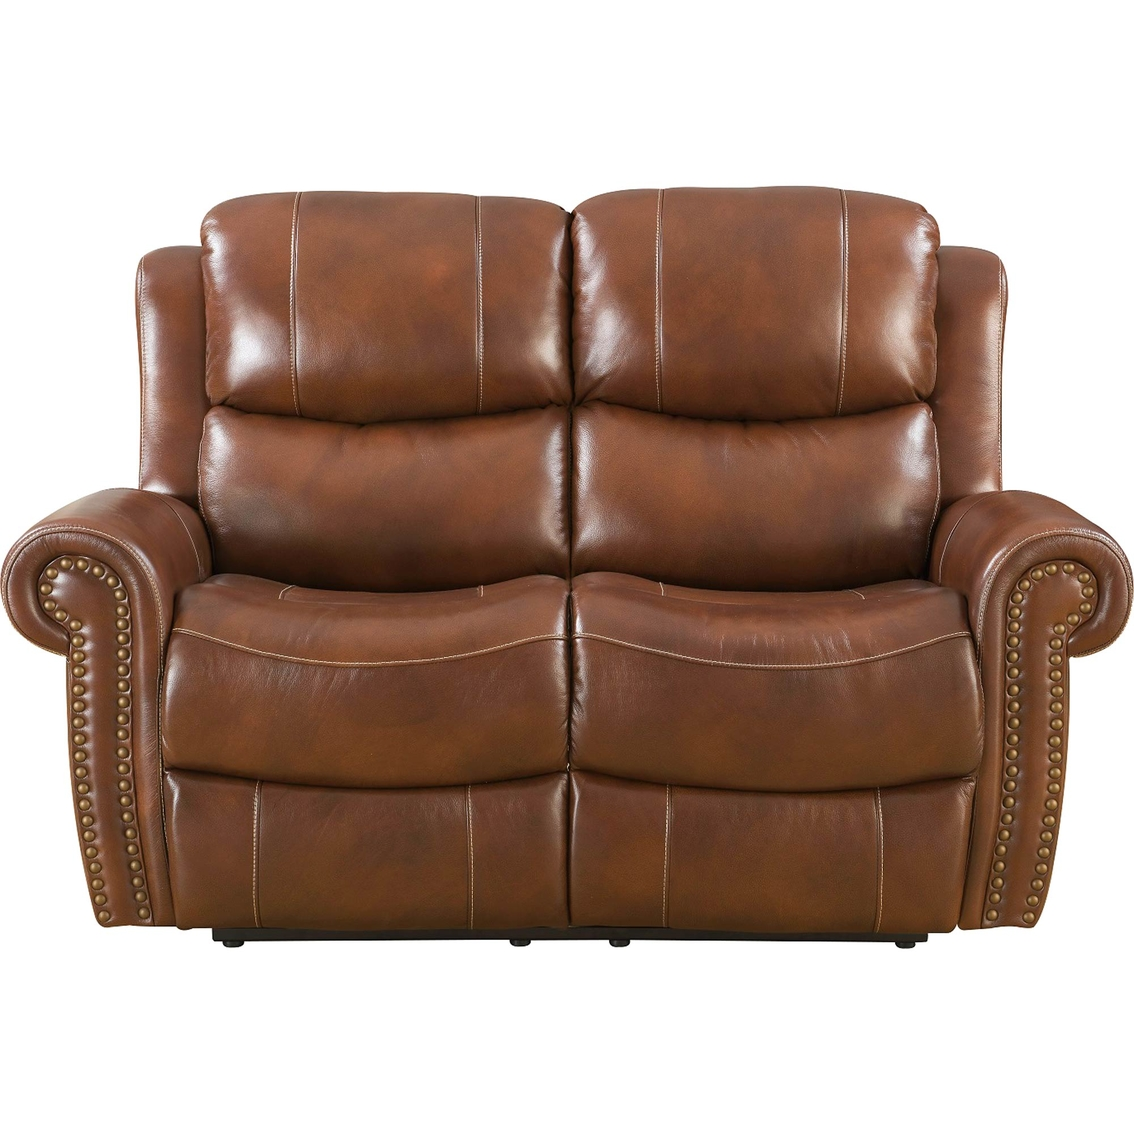 Klaussner Leather Sofa Review: Klaussner Alomar Leather Reclining Loveseat